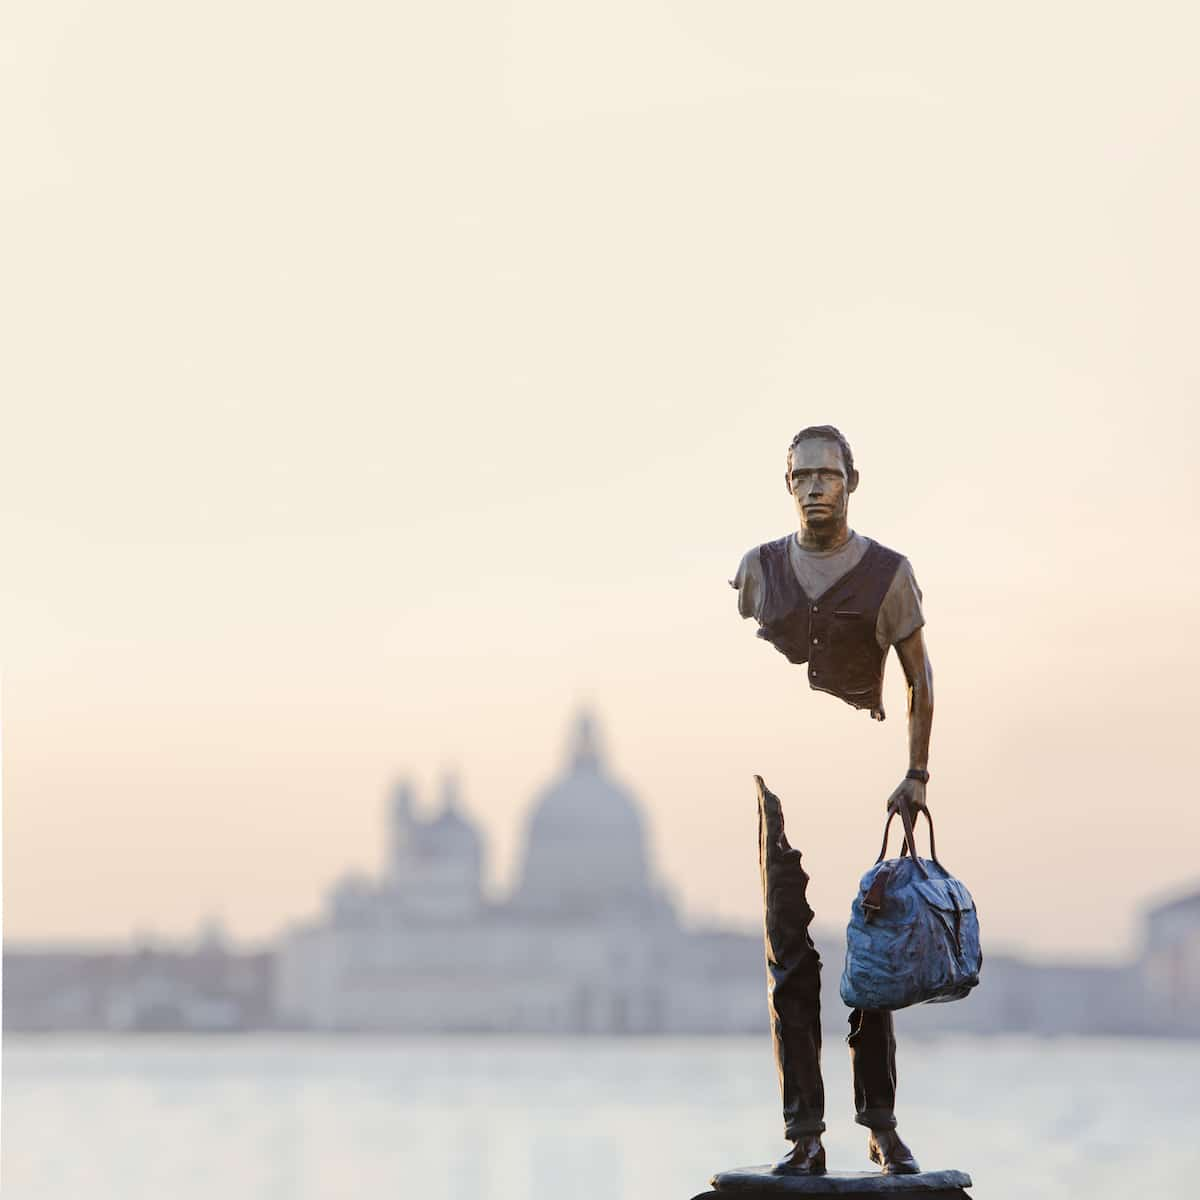 'The Travelers' by Bruno Catalano